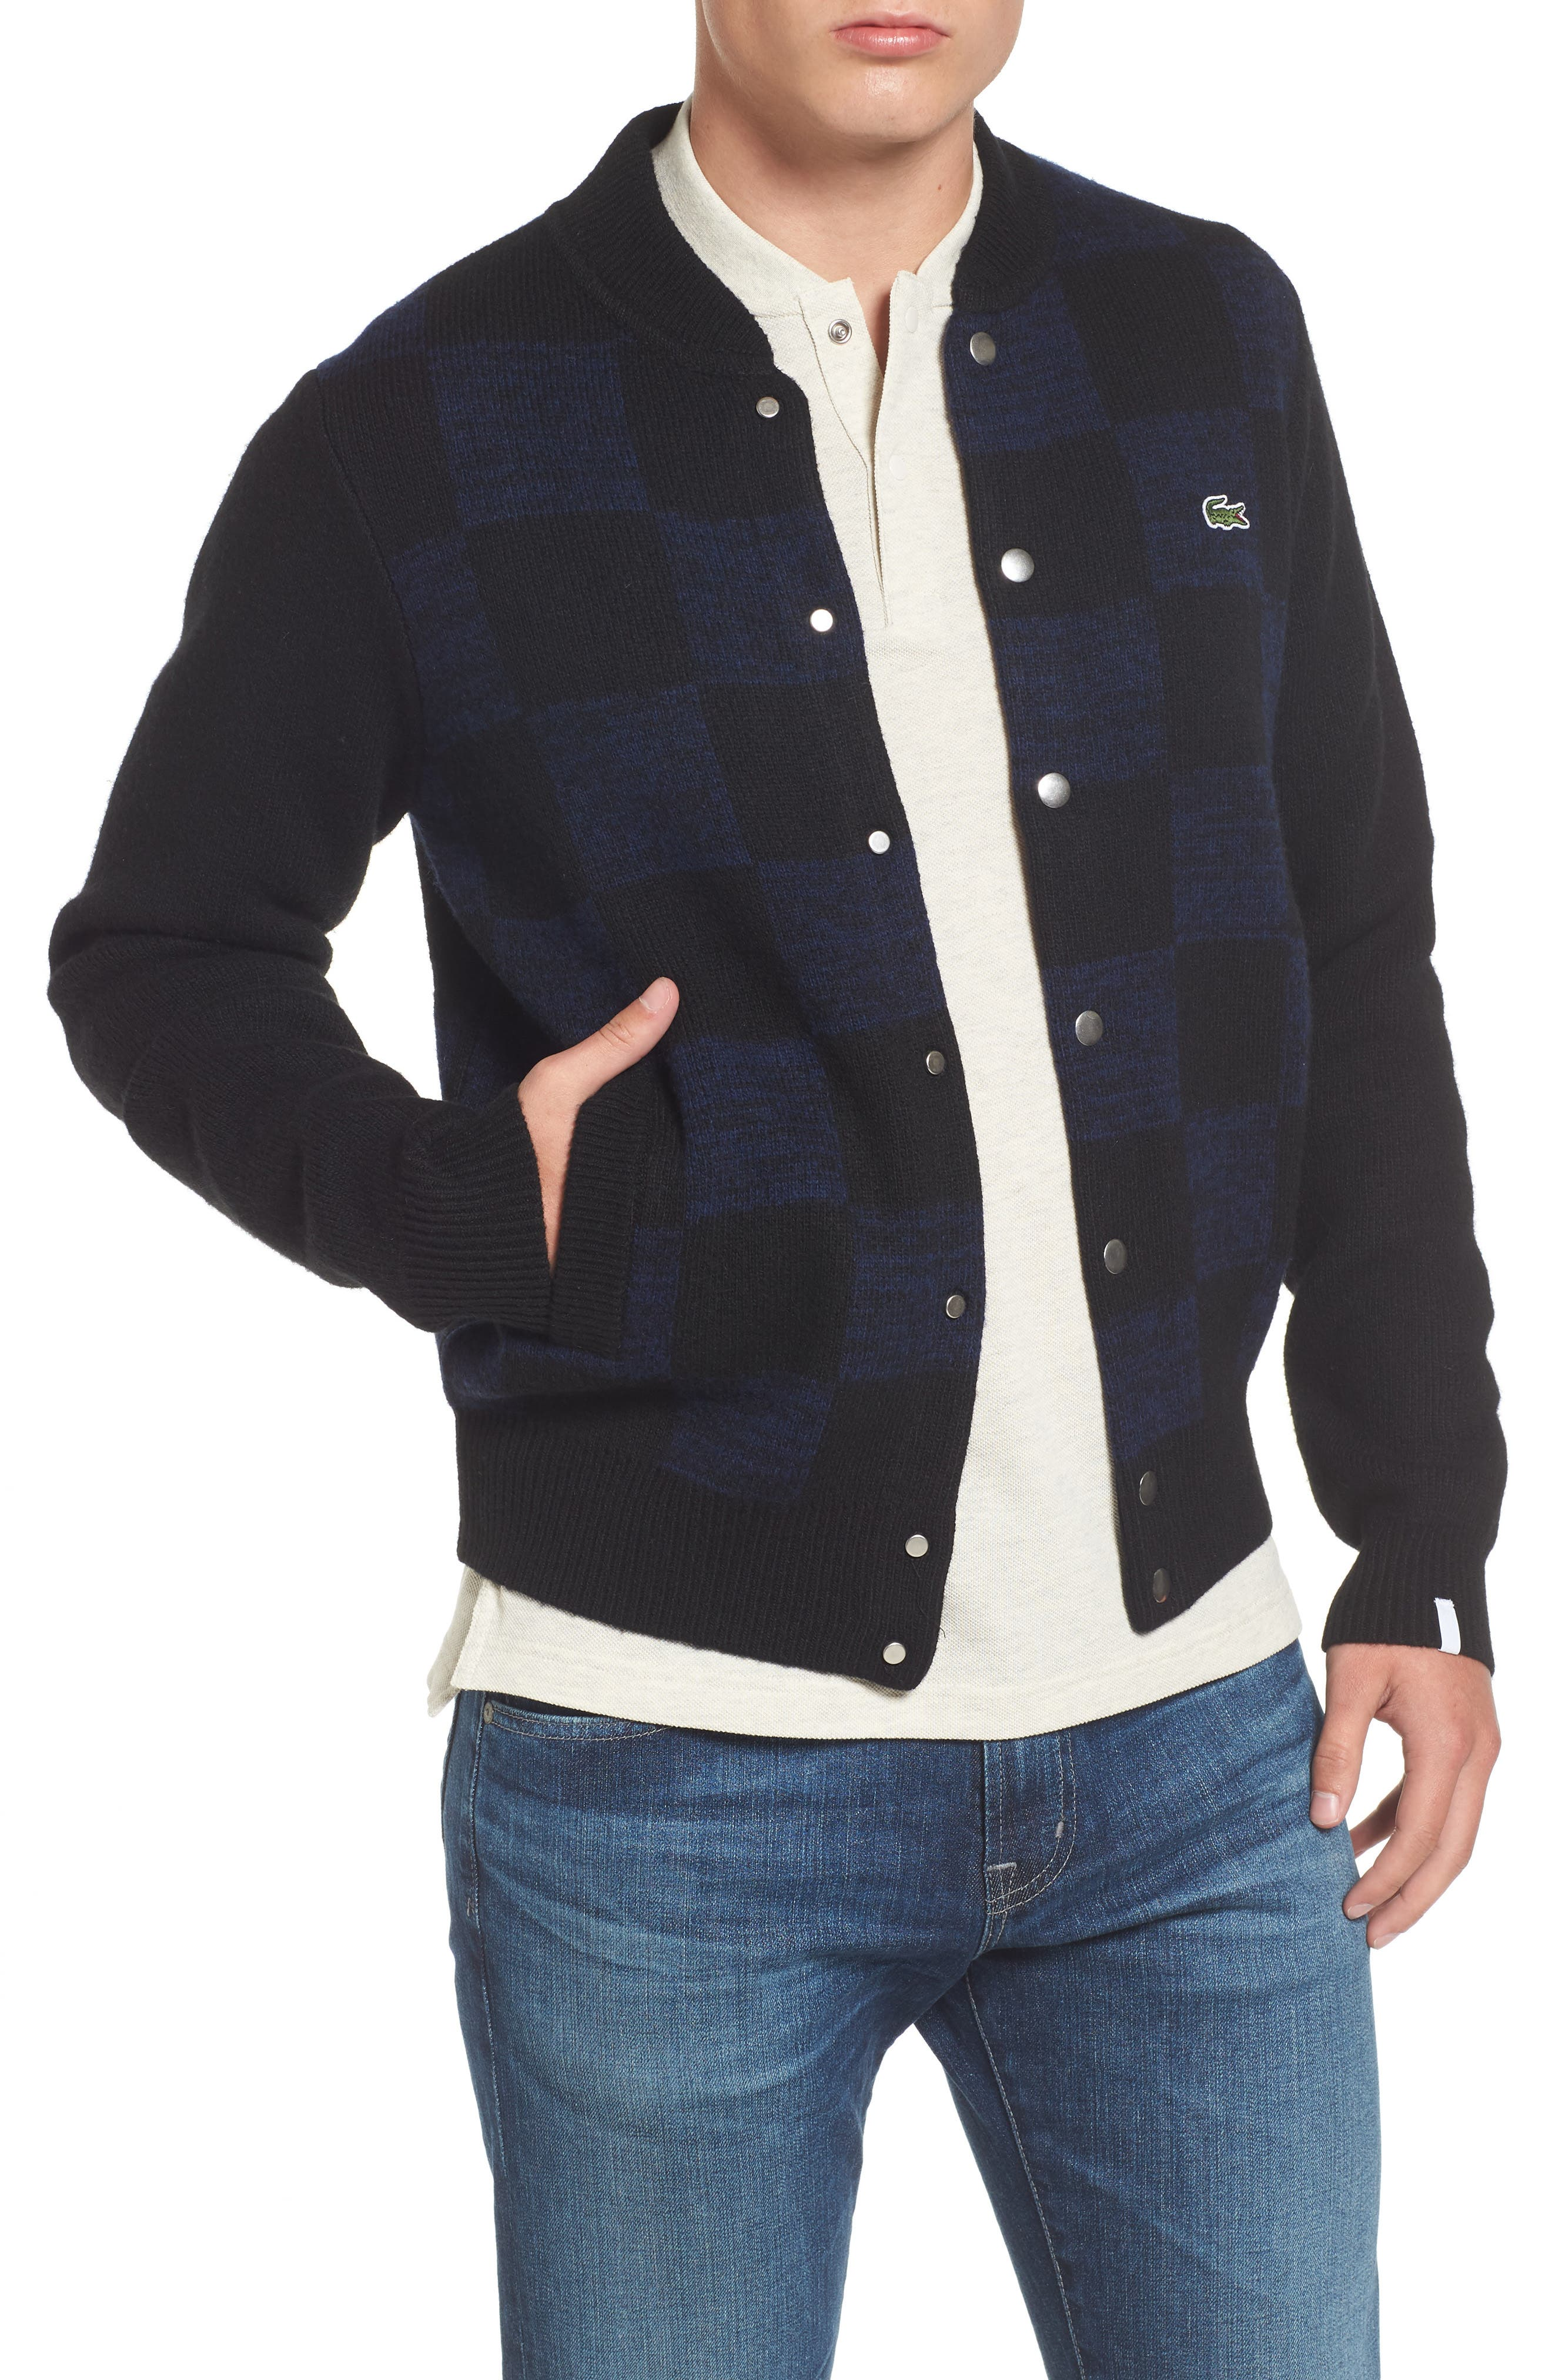 Lacoste Double Face Check Sweater Jacket